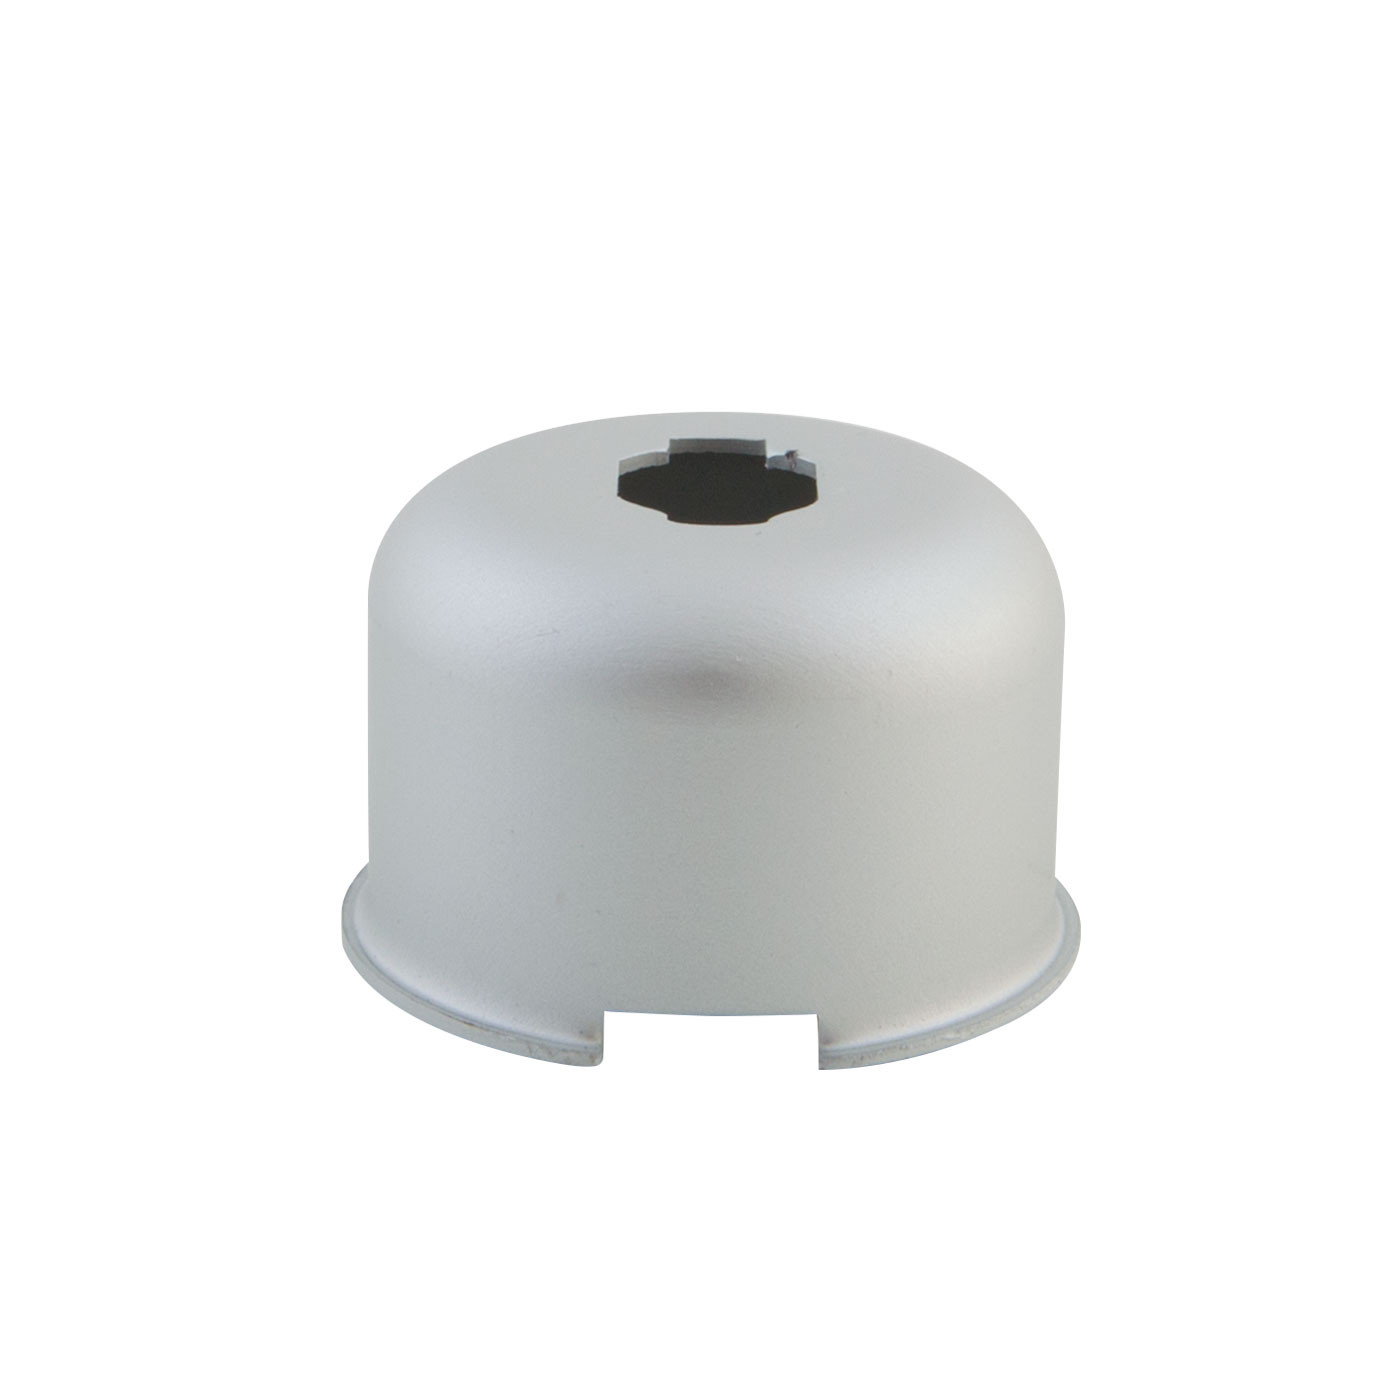 Artemide Tolomeo Micro replacement cup for E14 lamp holder